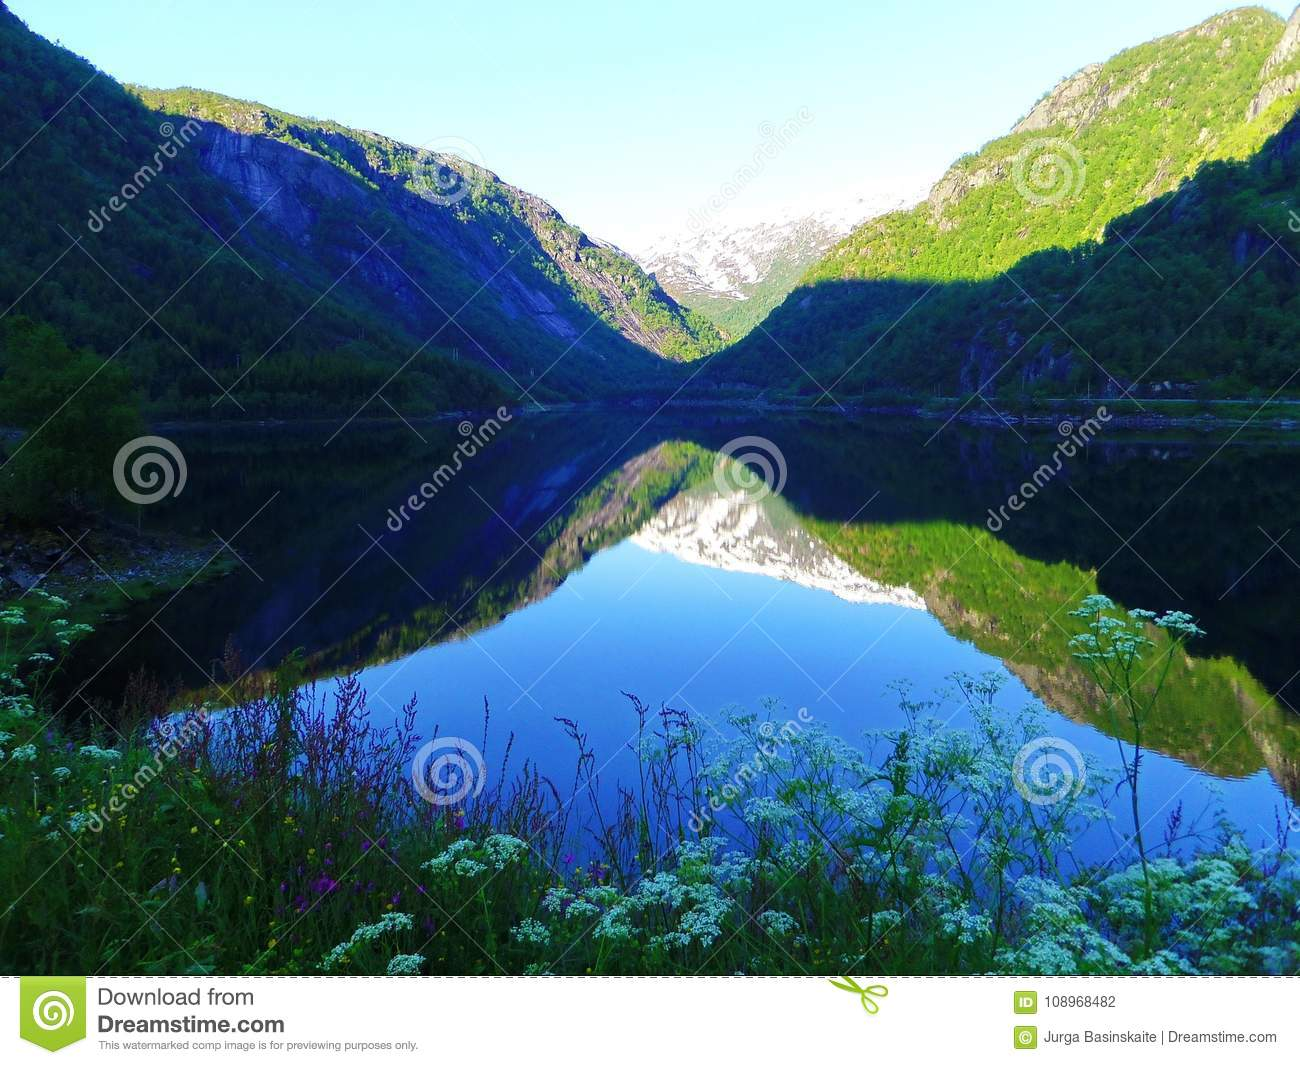 Lake, plants and beautiful mountains, Norway